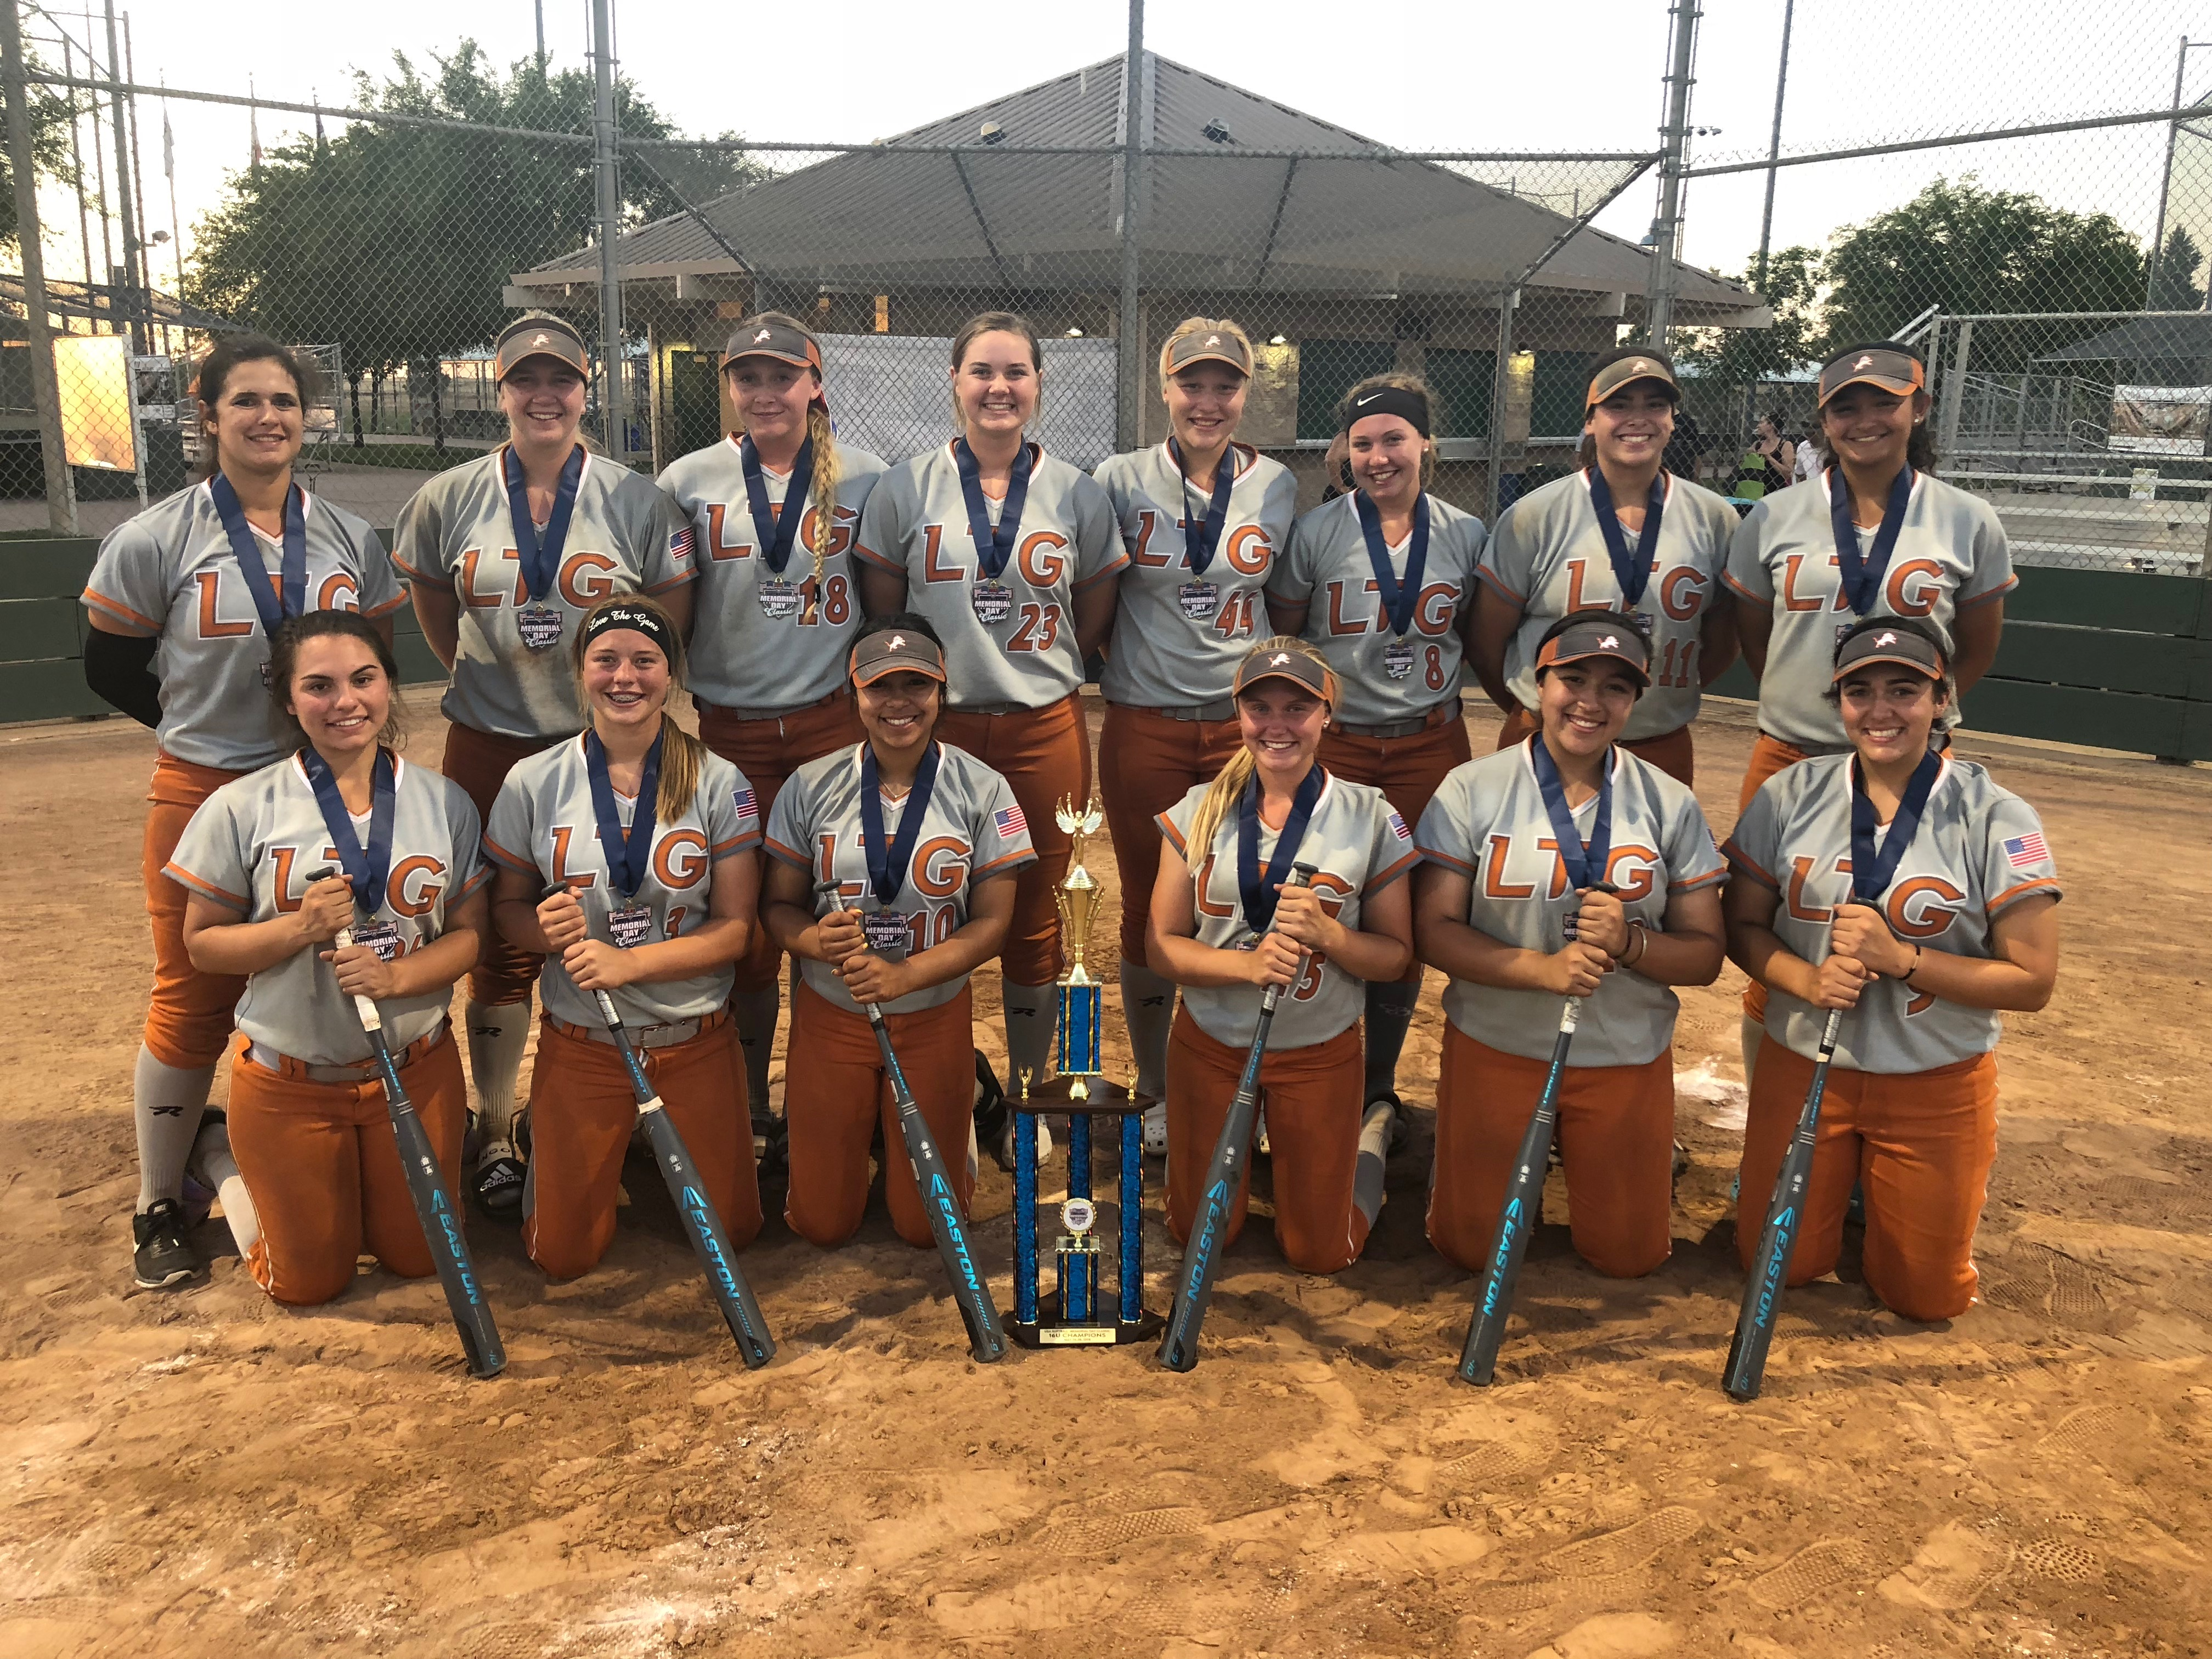 LTG 16U Henderson/Lively Team Finishes 1st Place in the USA Softball Memorial Day Classic